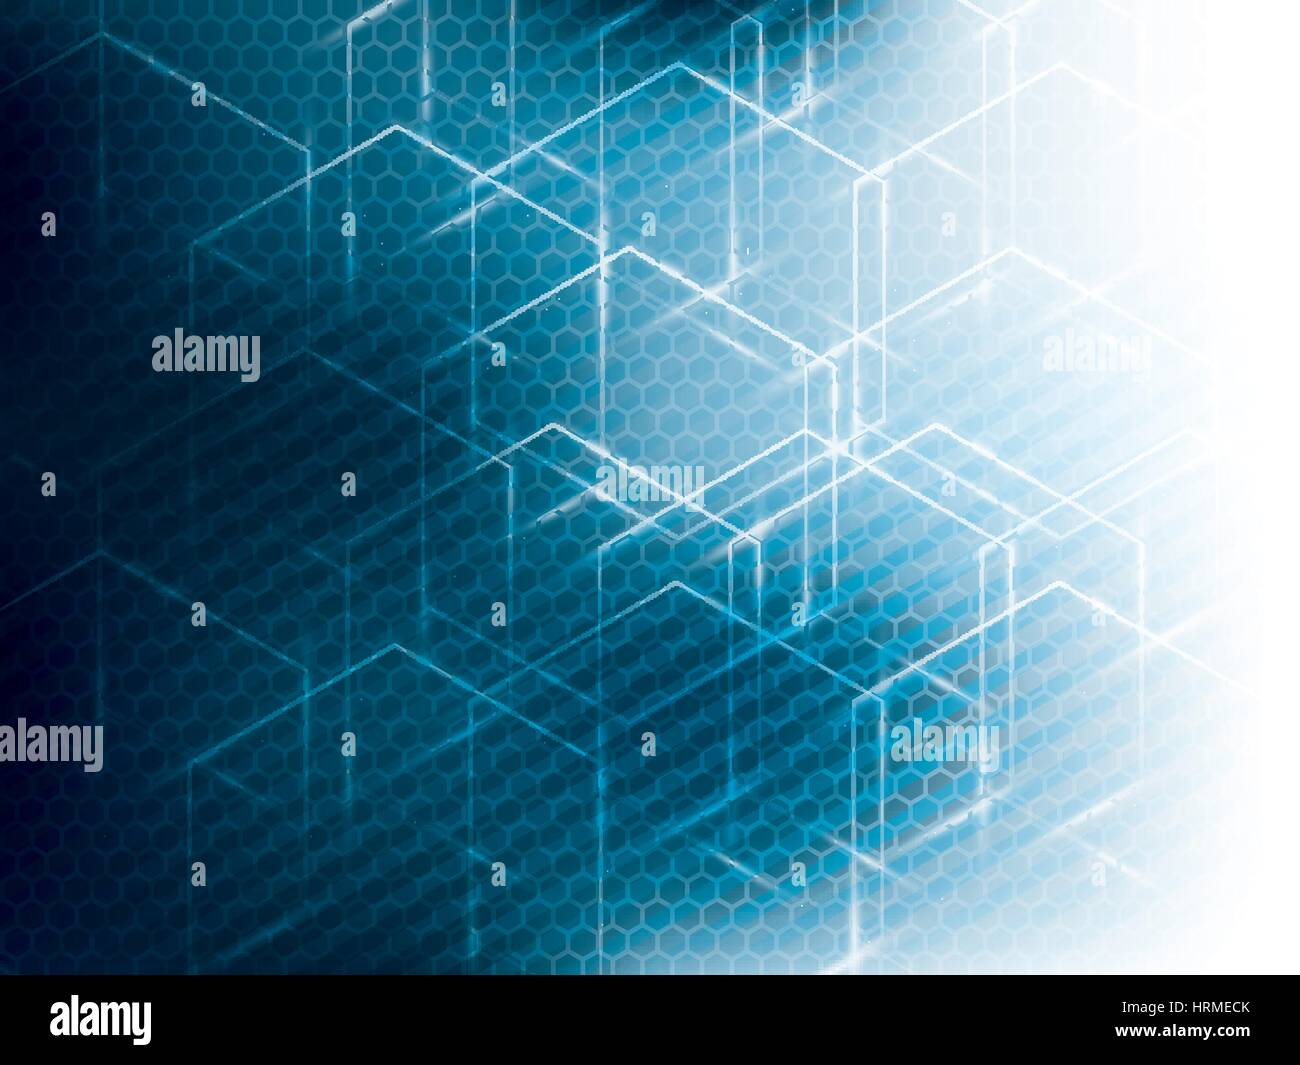 Vector abstract science technology blue background. Hexagon geometric design. - Stock Image